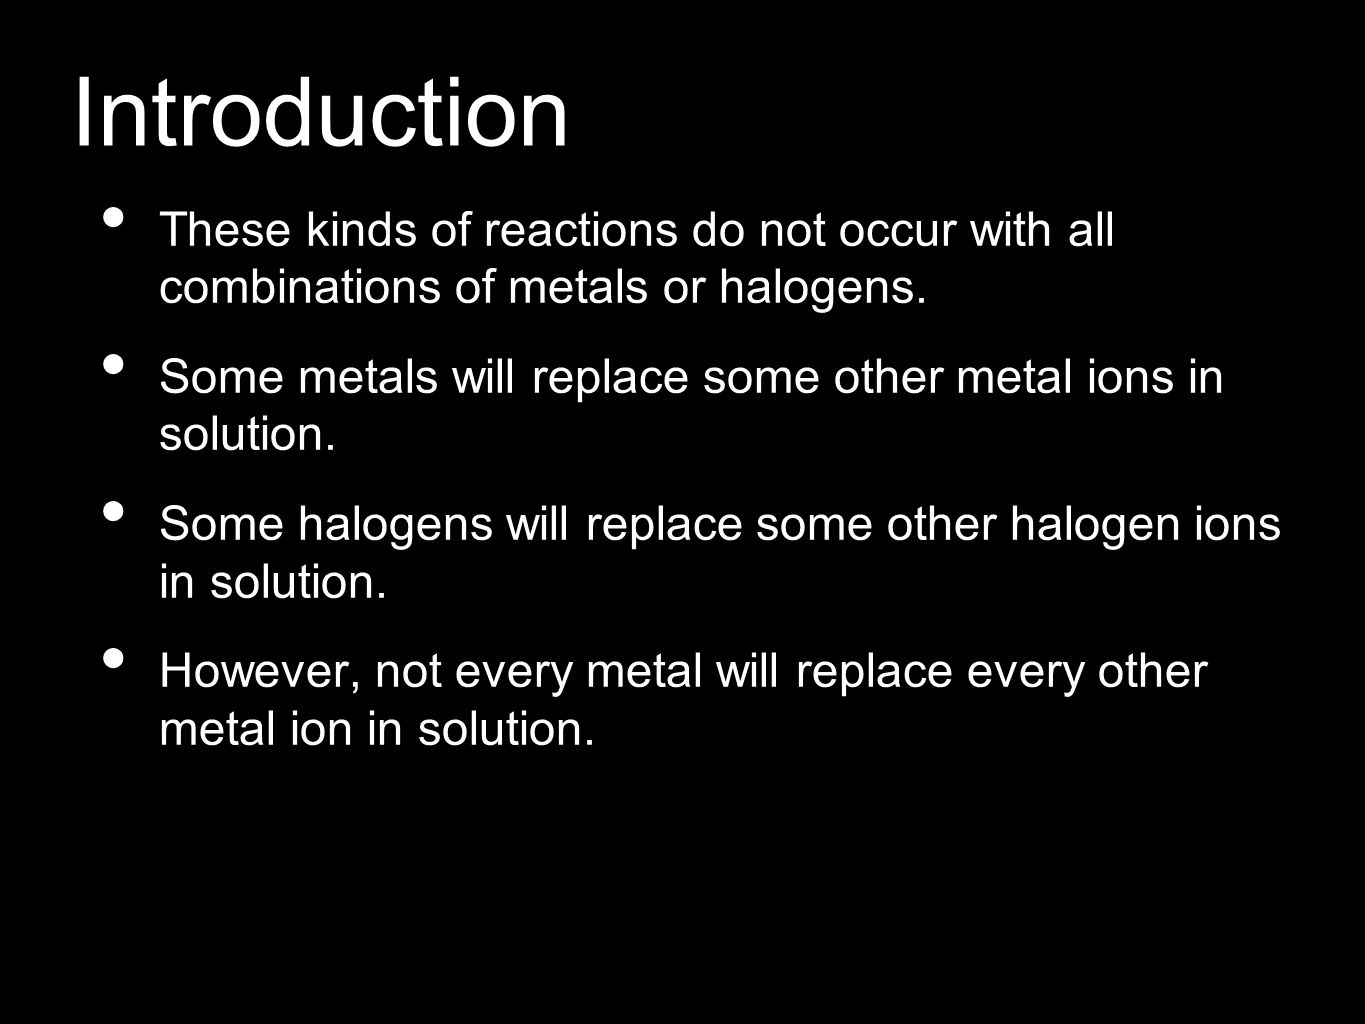 Introduction These kinds of reactions do not occur with all combinations of metals or halogens. Some metals will replace some other metal ions in solu